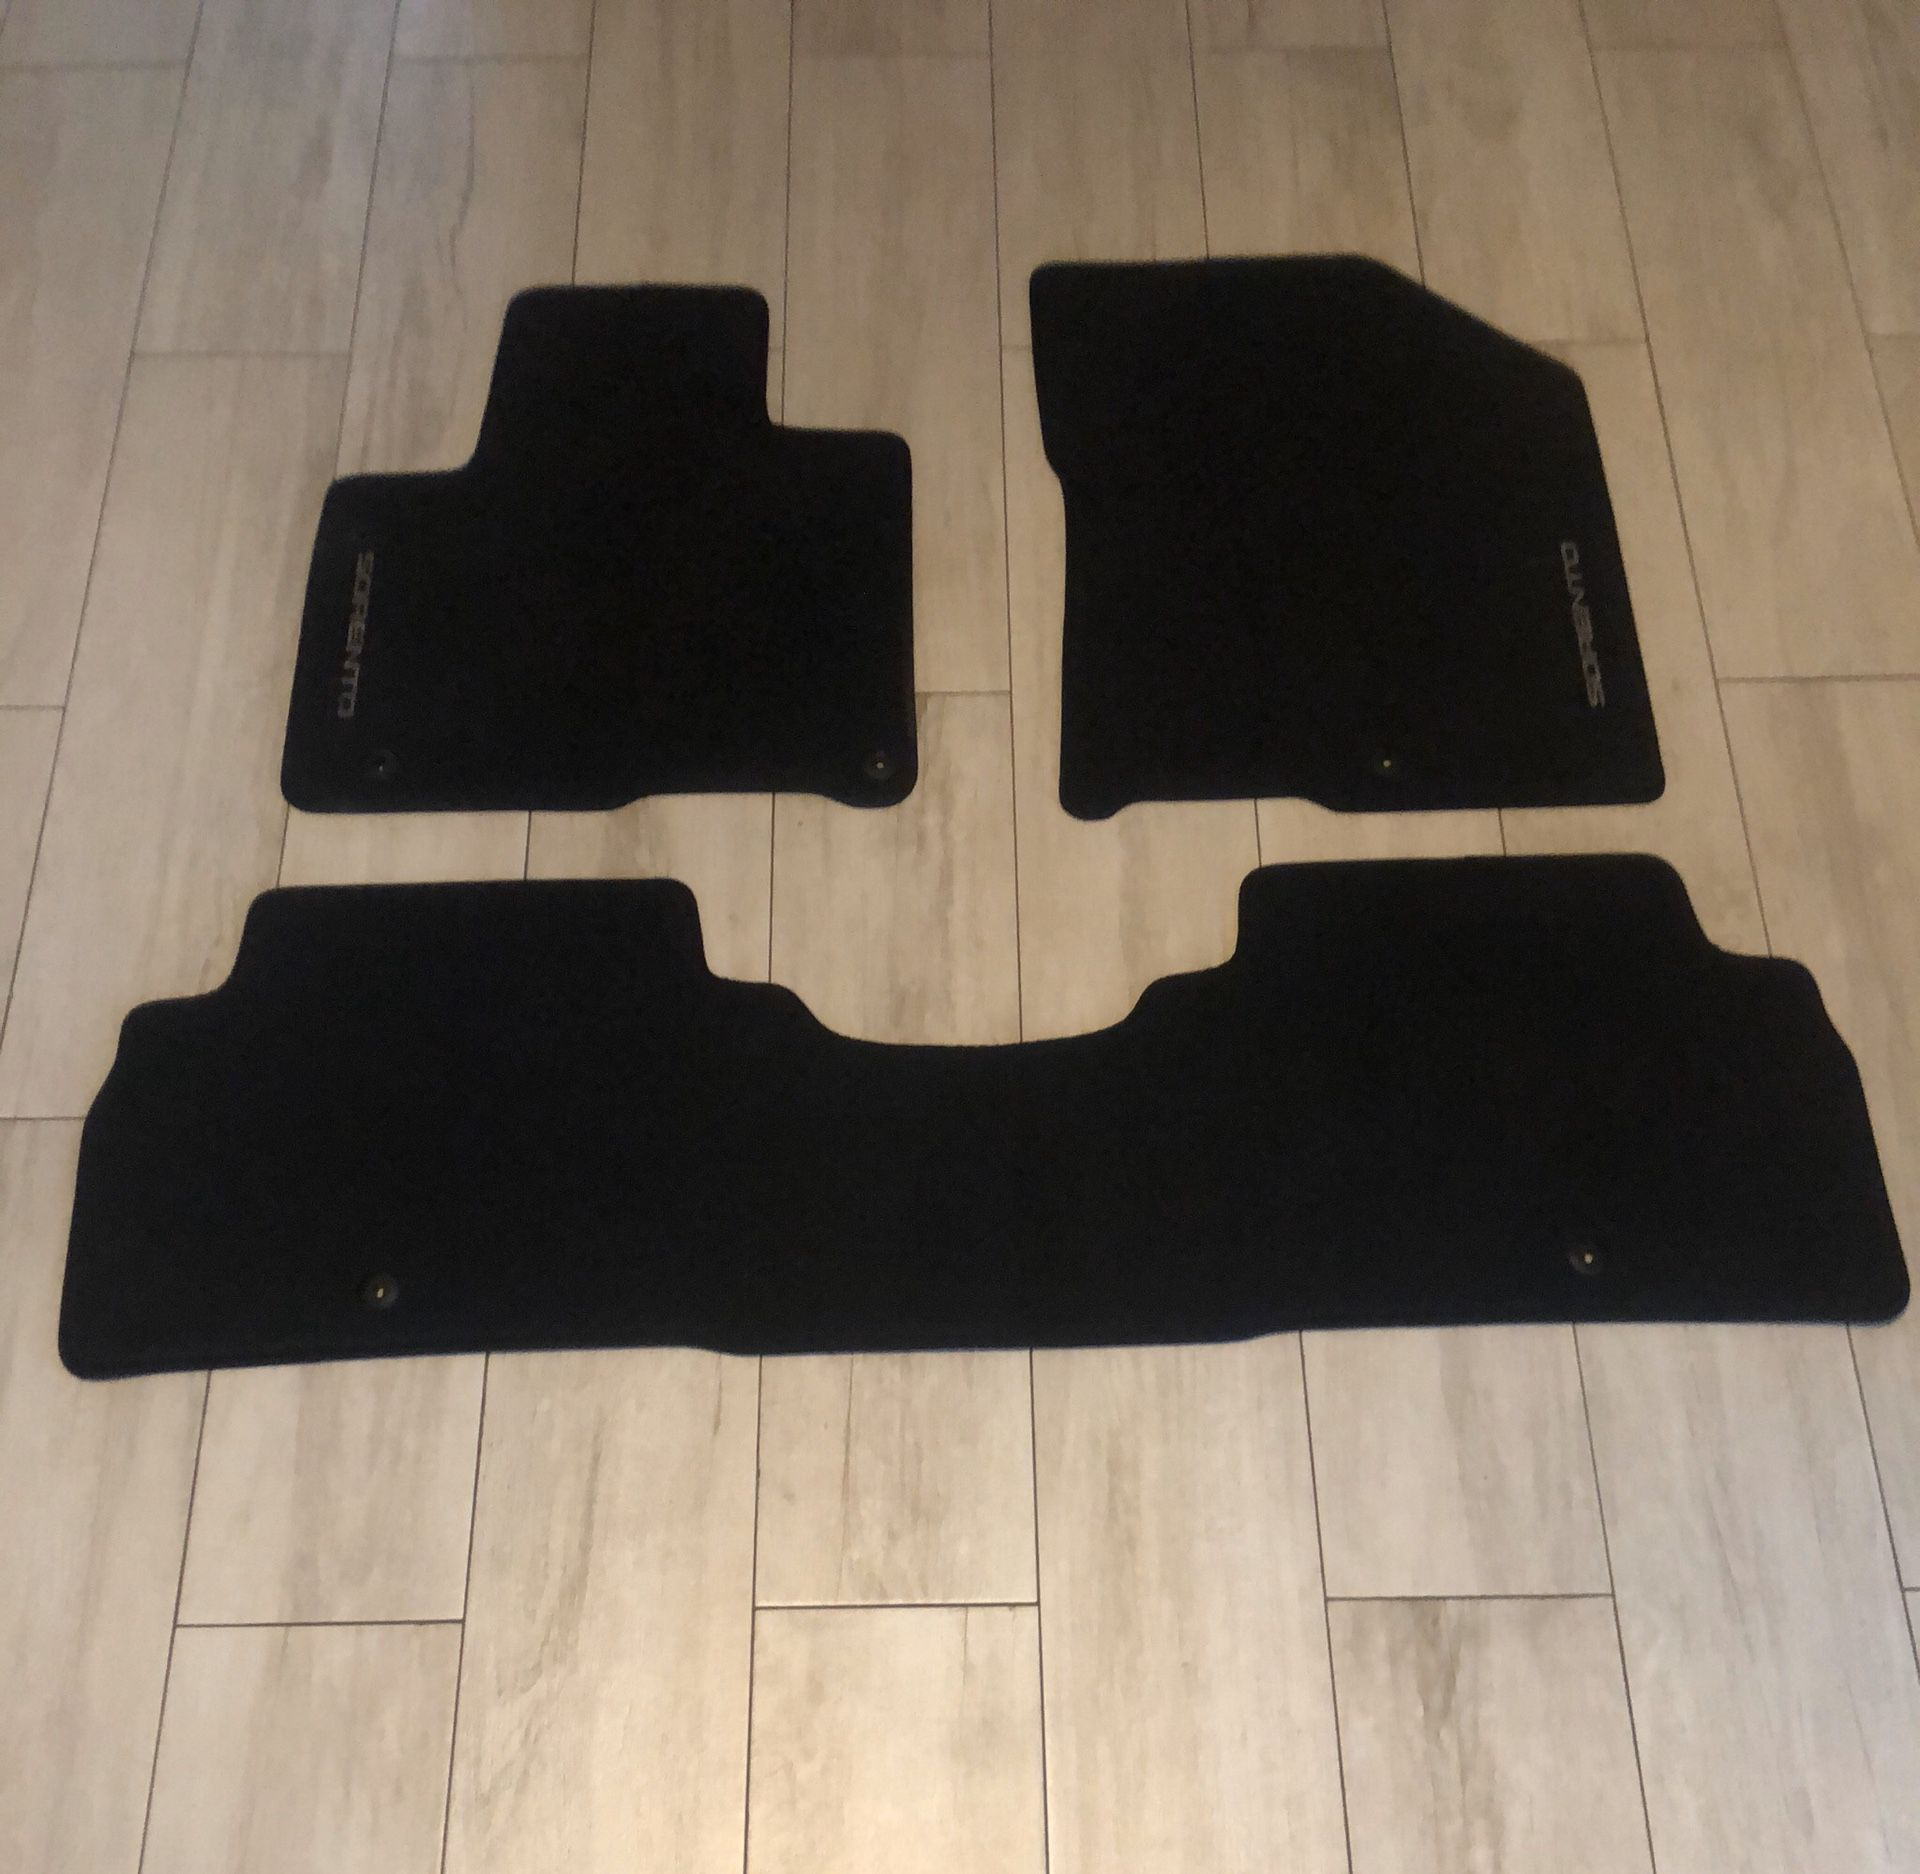 Kia Sorento 2015-2019 floor mats OE set only $80 complete set front and rear